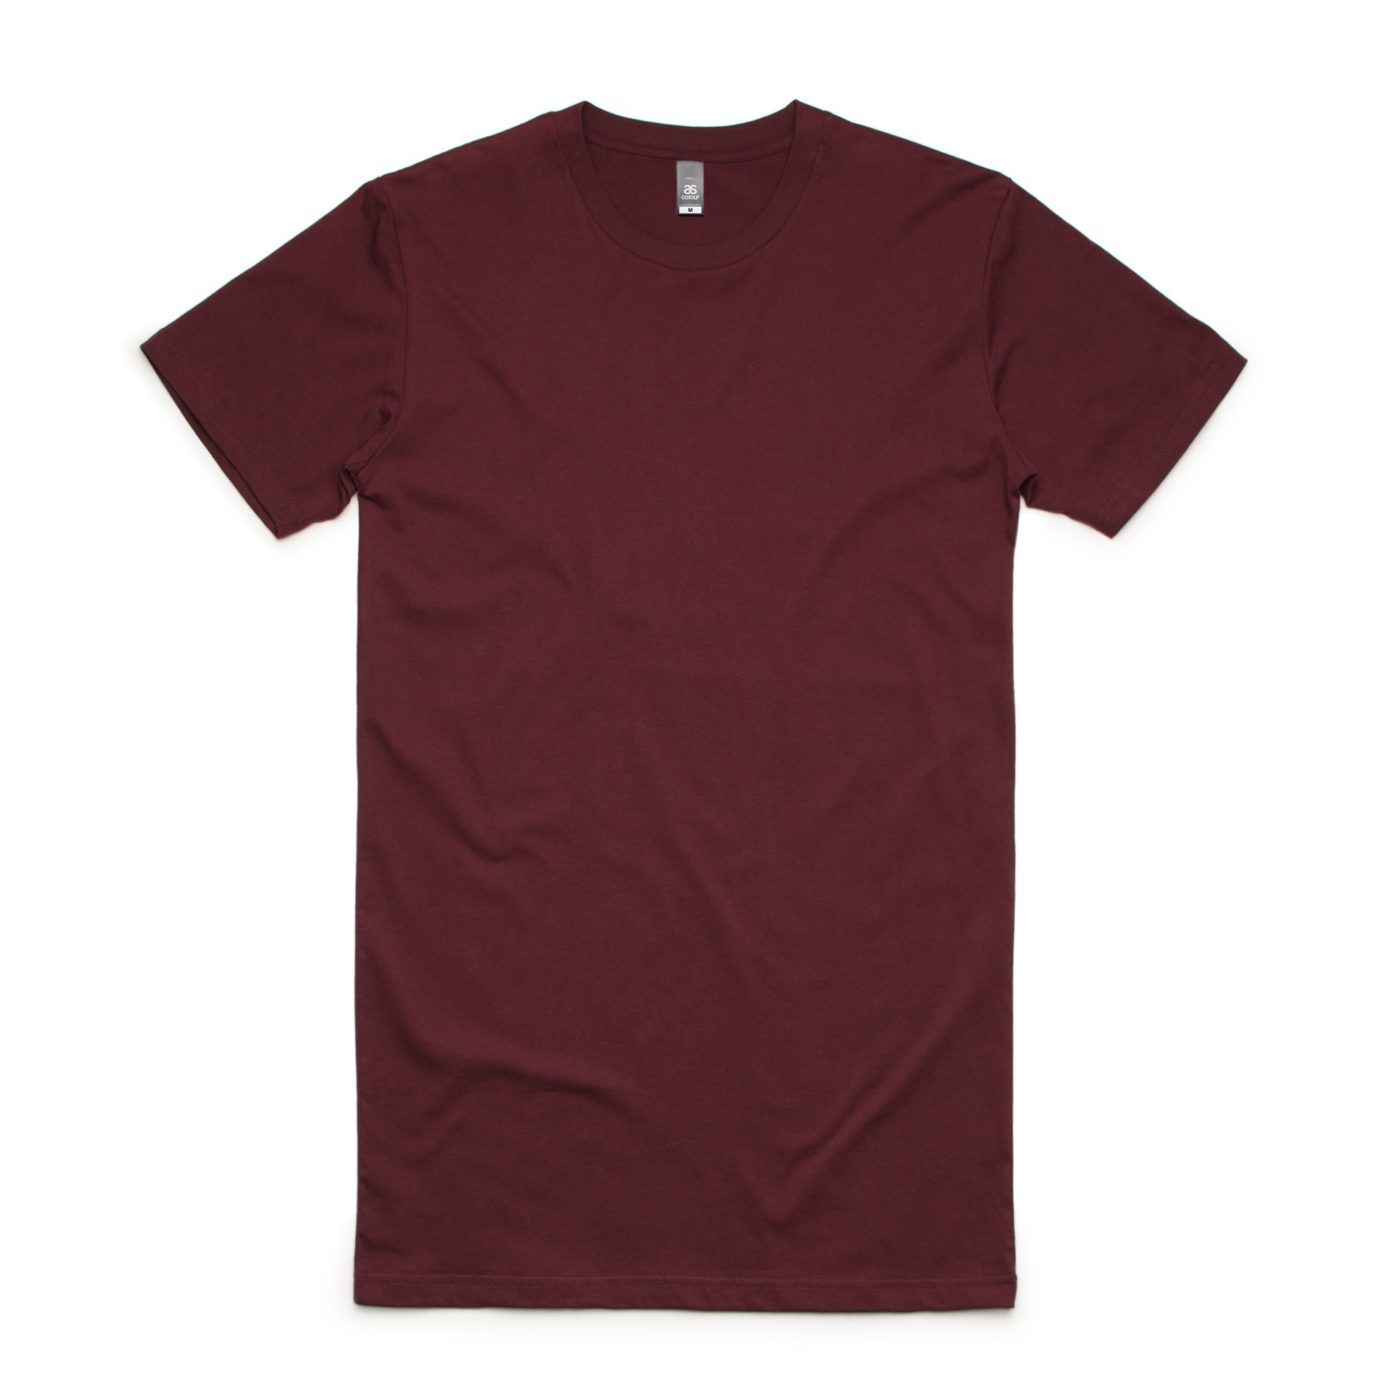 Burgundy AS Colour AS5013 Tall Tee longer length tee great to print or embroider